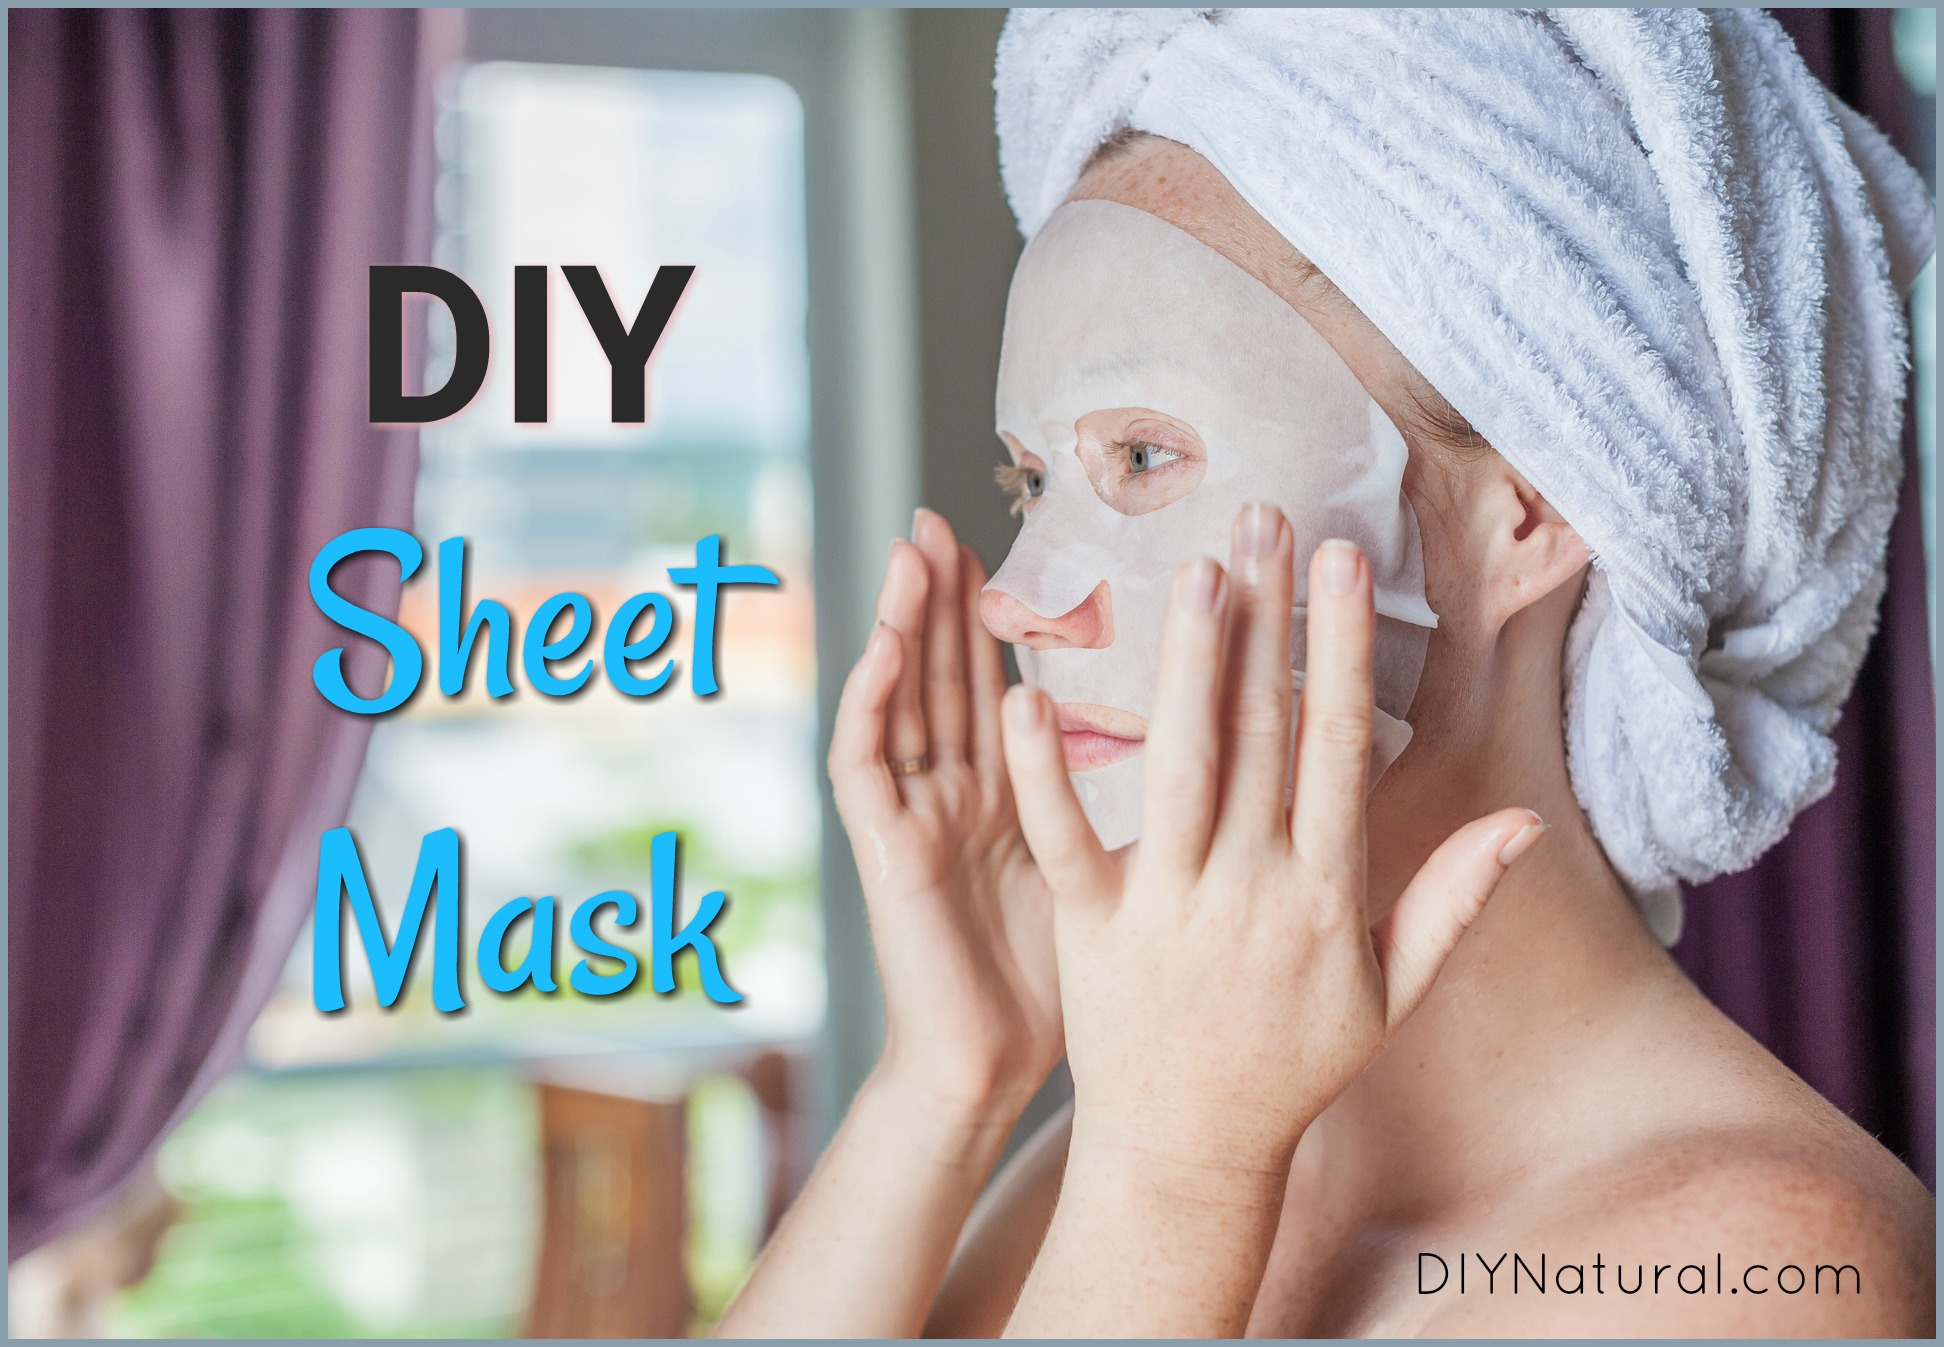 DIY Sheet Mask: Make Your Own Mask and